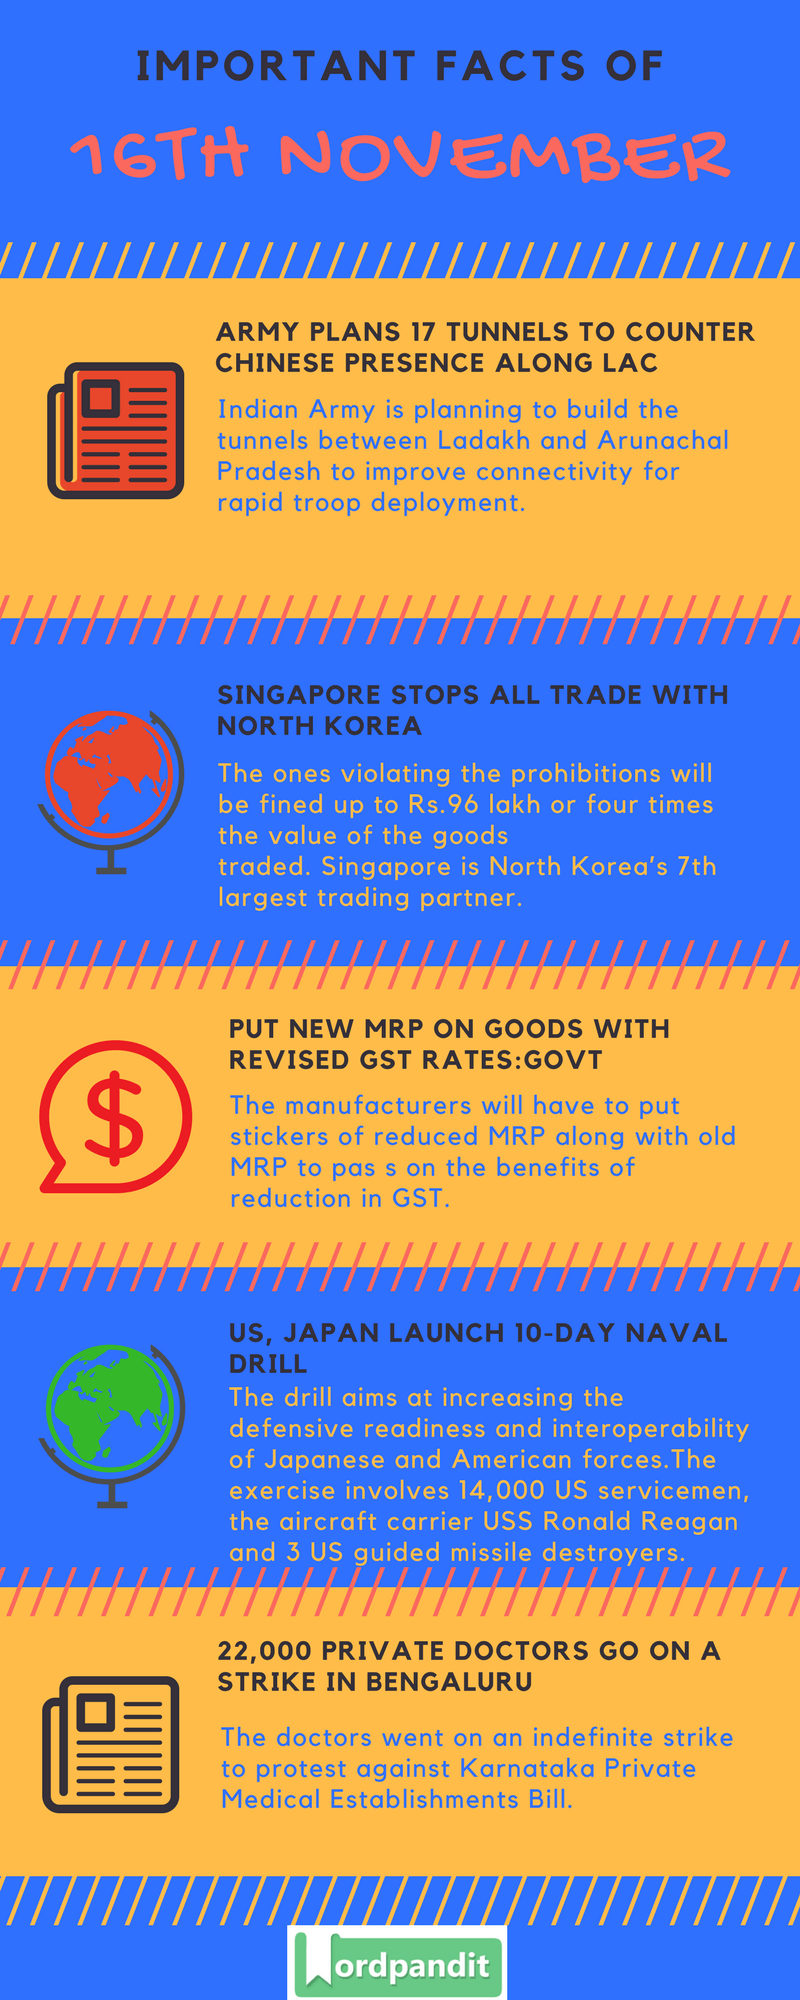 Daily-Current-Affairs-16-november-2017-Current-Affairs-Quiz-november-16-2017-Current-Affairs-Infographic